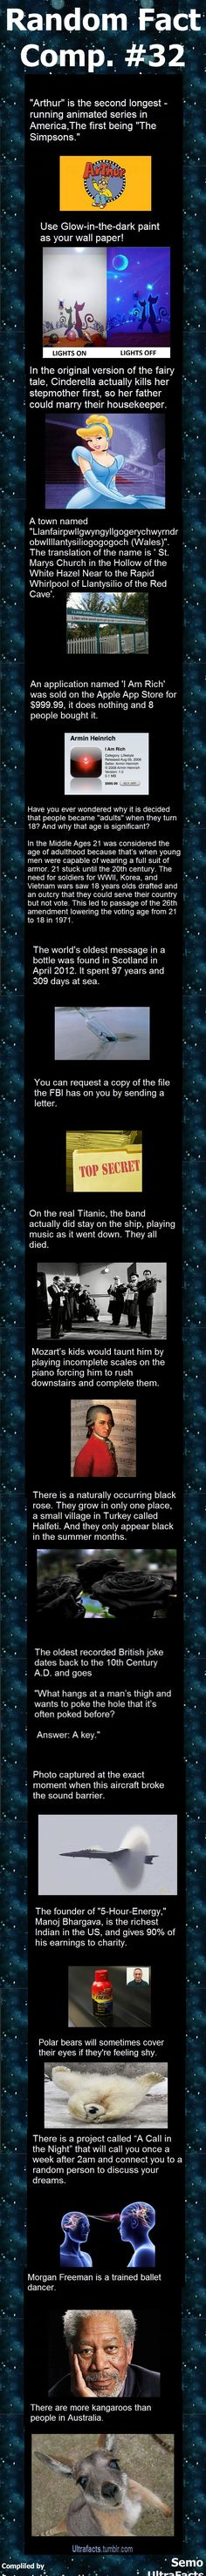 Random Fact Comp. 32 // funny pictures - funny photos - funny images - funny pics - funny quotes - #lol #humor #funnypictures: